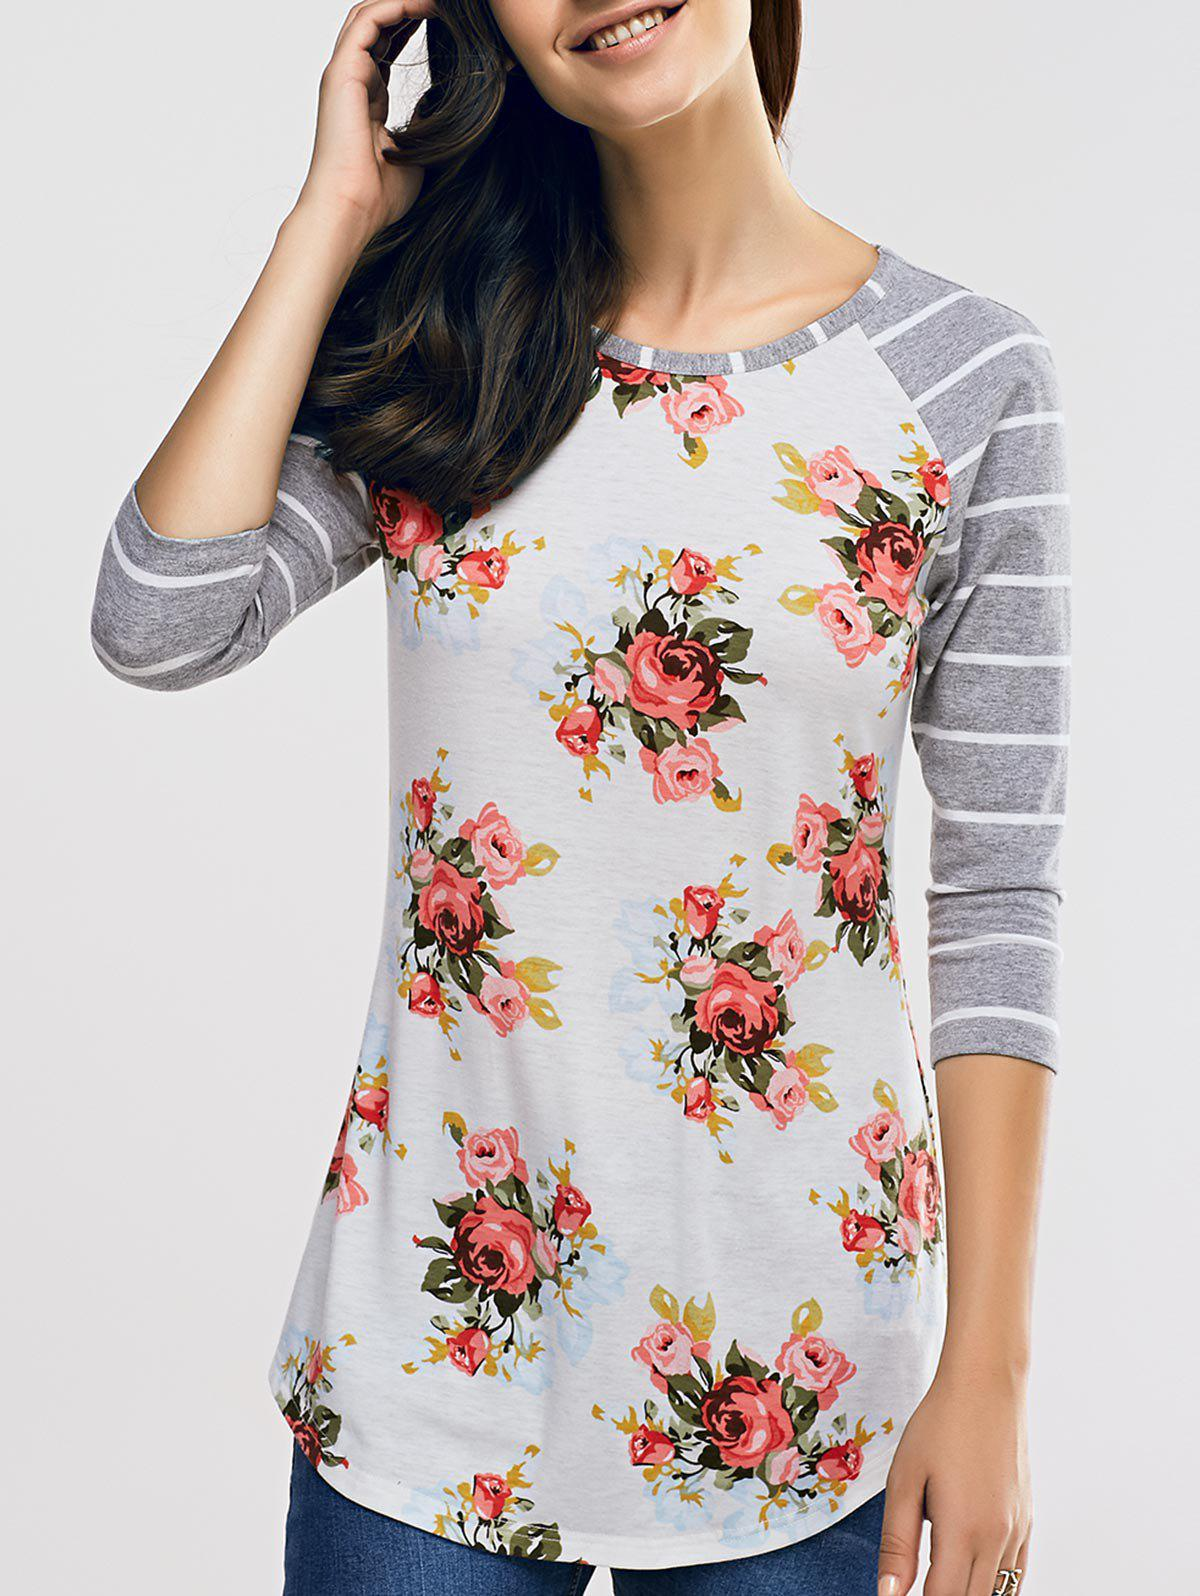 Raglan Sleeve Casual Floral and Striped T-Shirt - GREY/WHITE XL